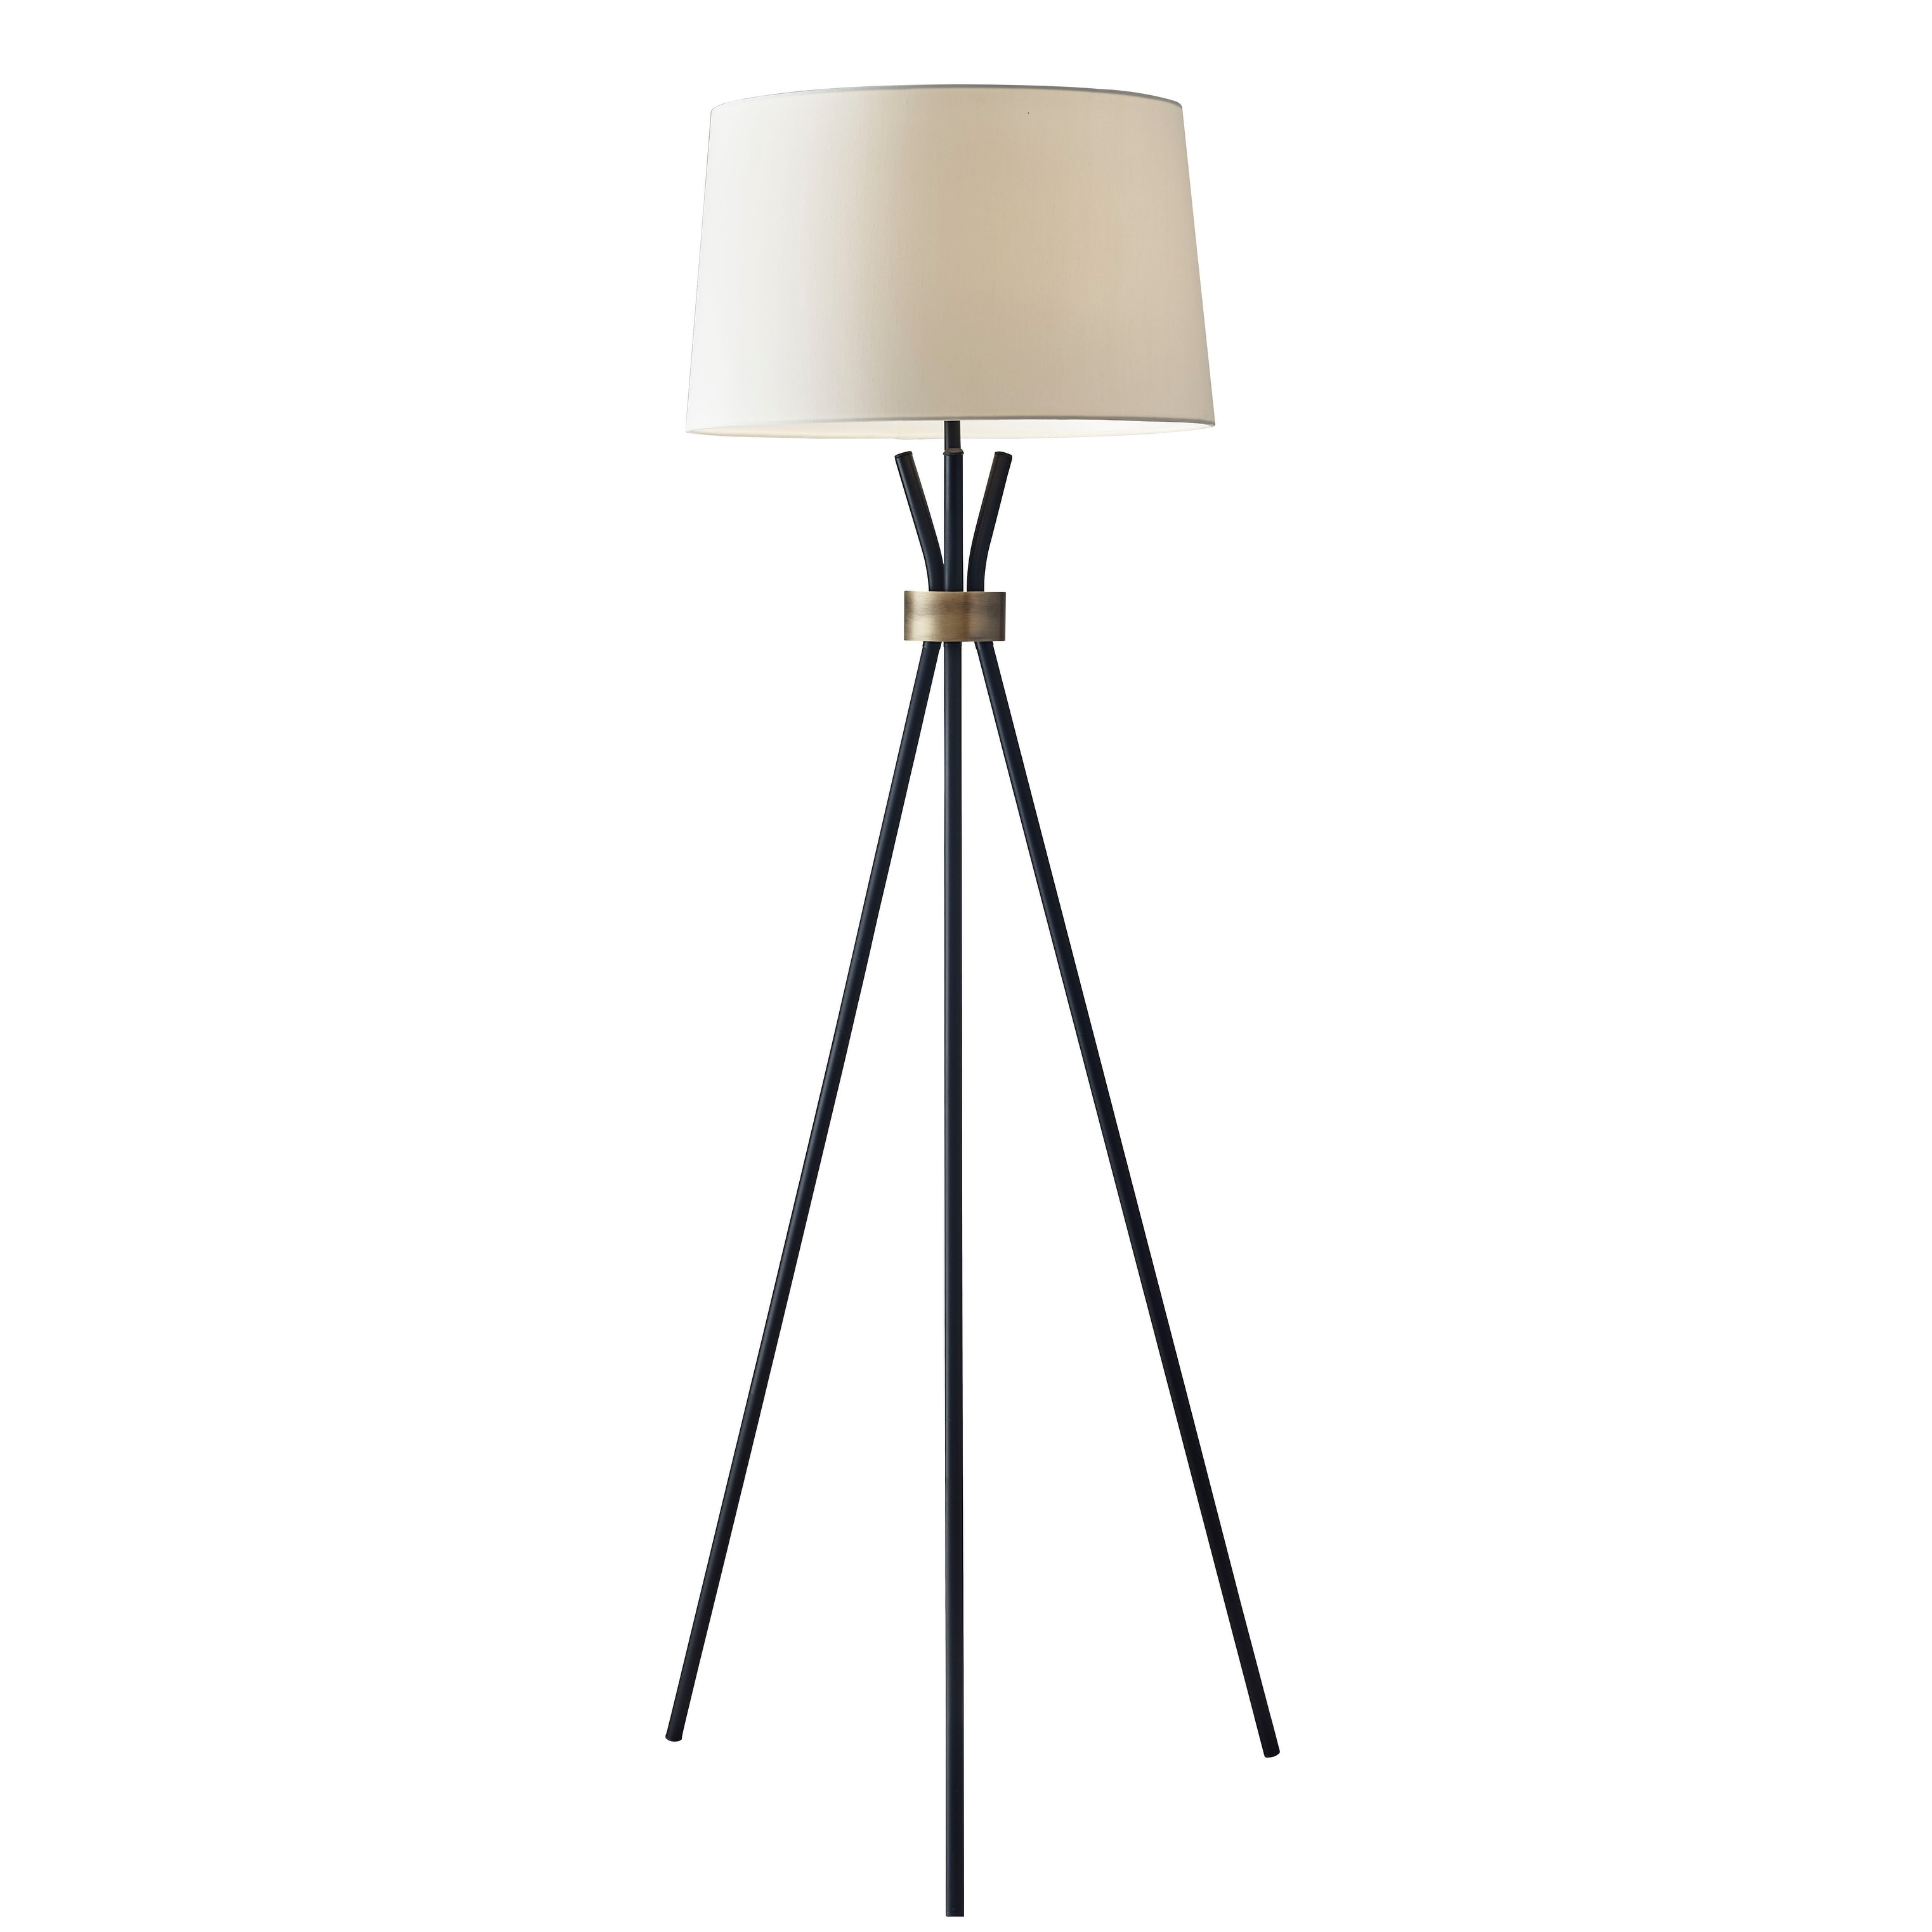 Adesso Benson Black With Antique Bronze Tripod Floor Lamp Free Shipping Today 23034024